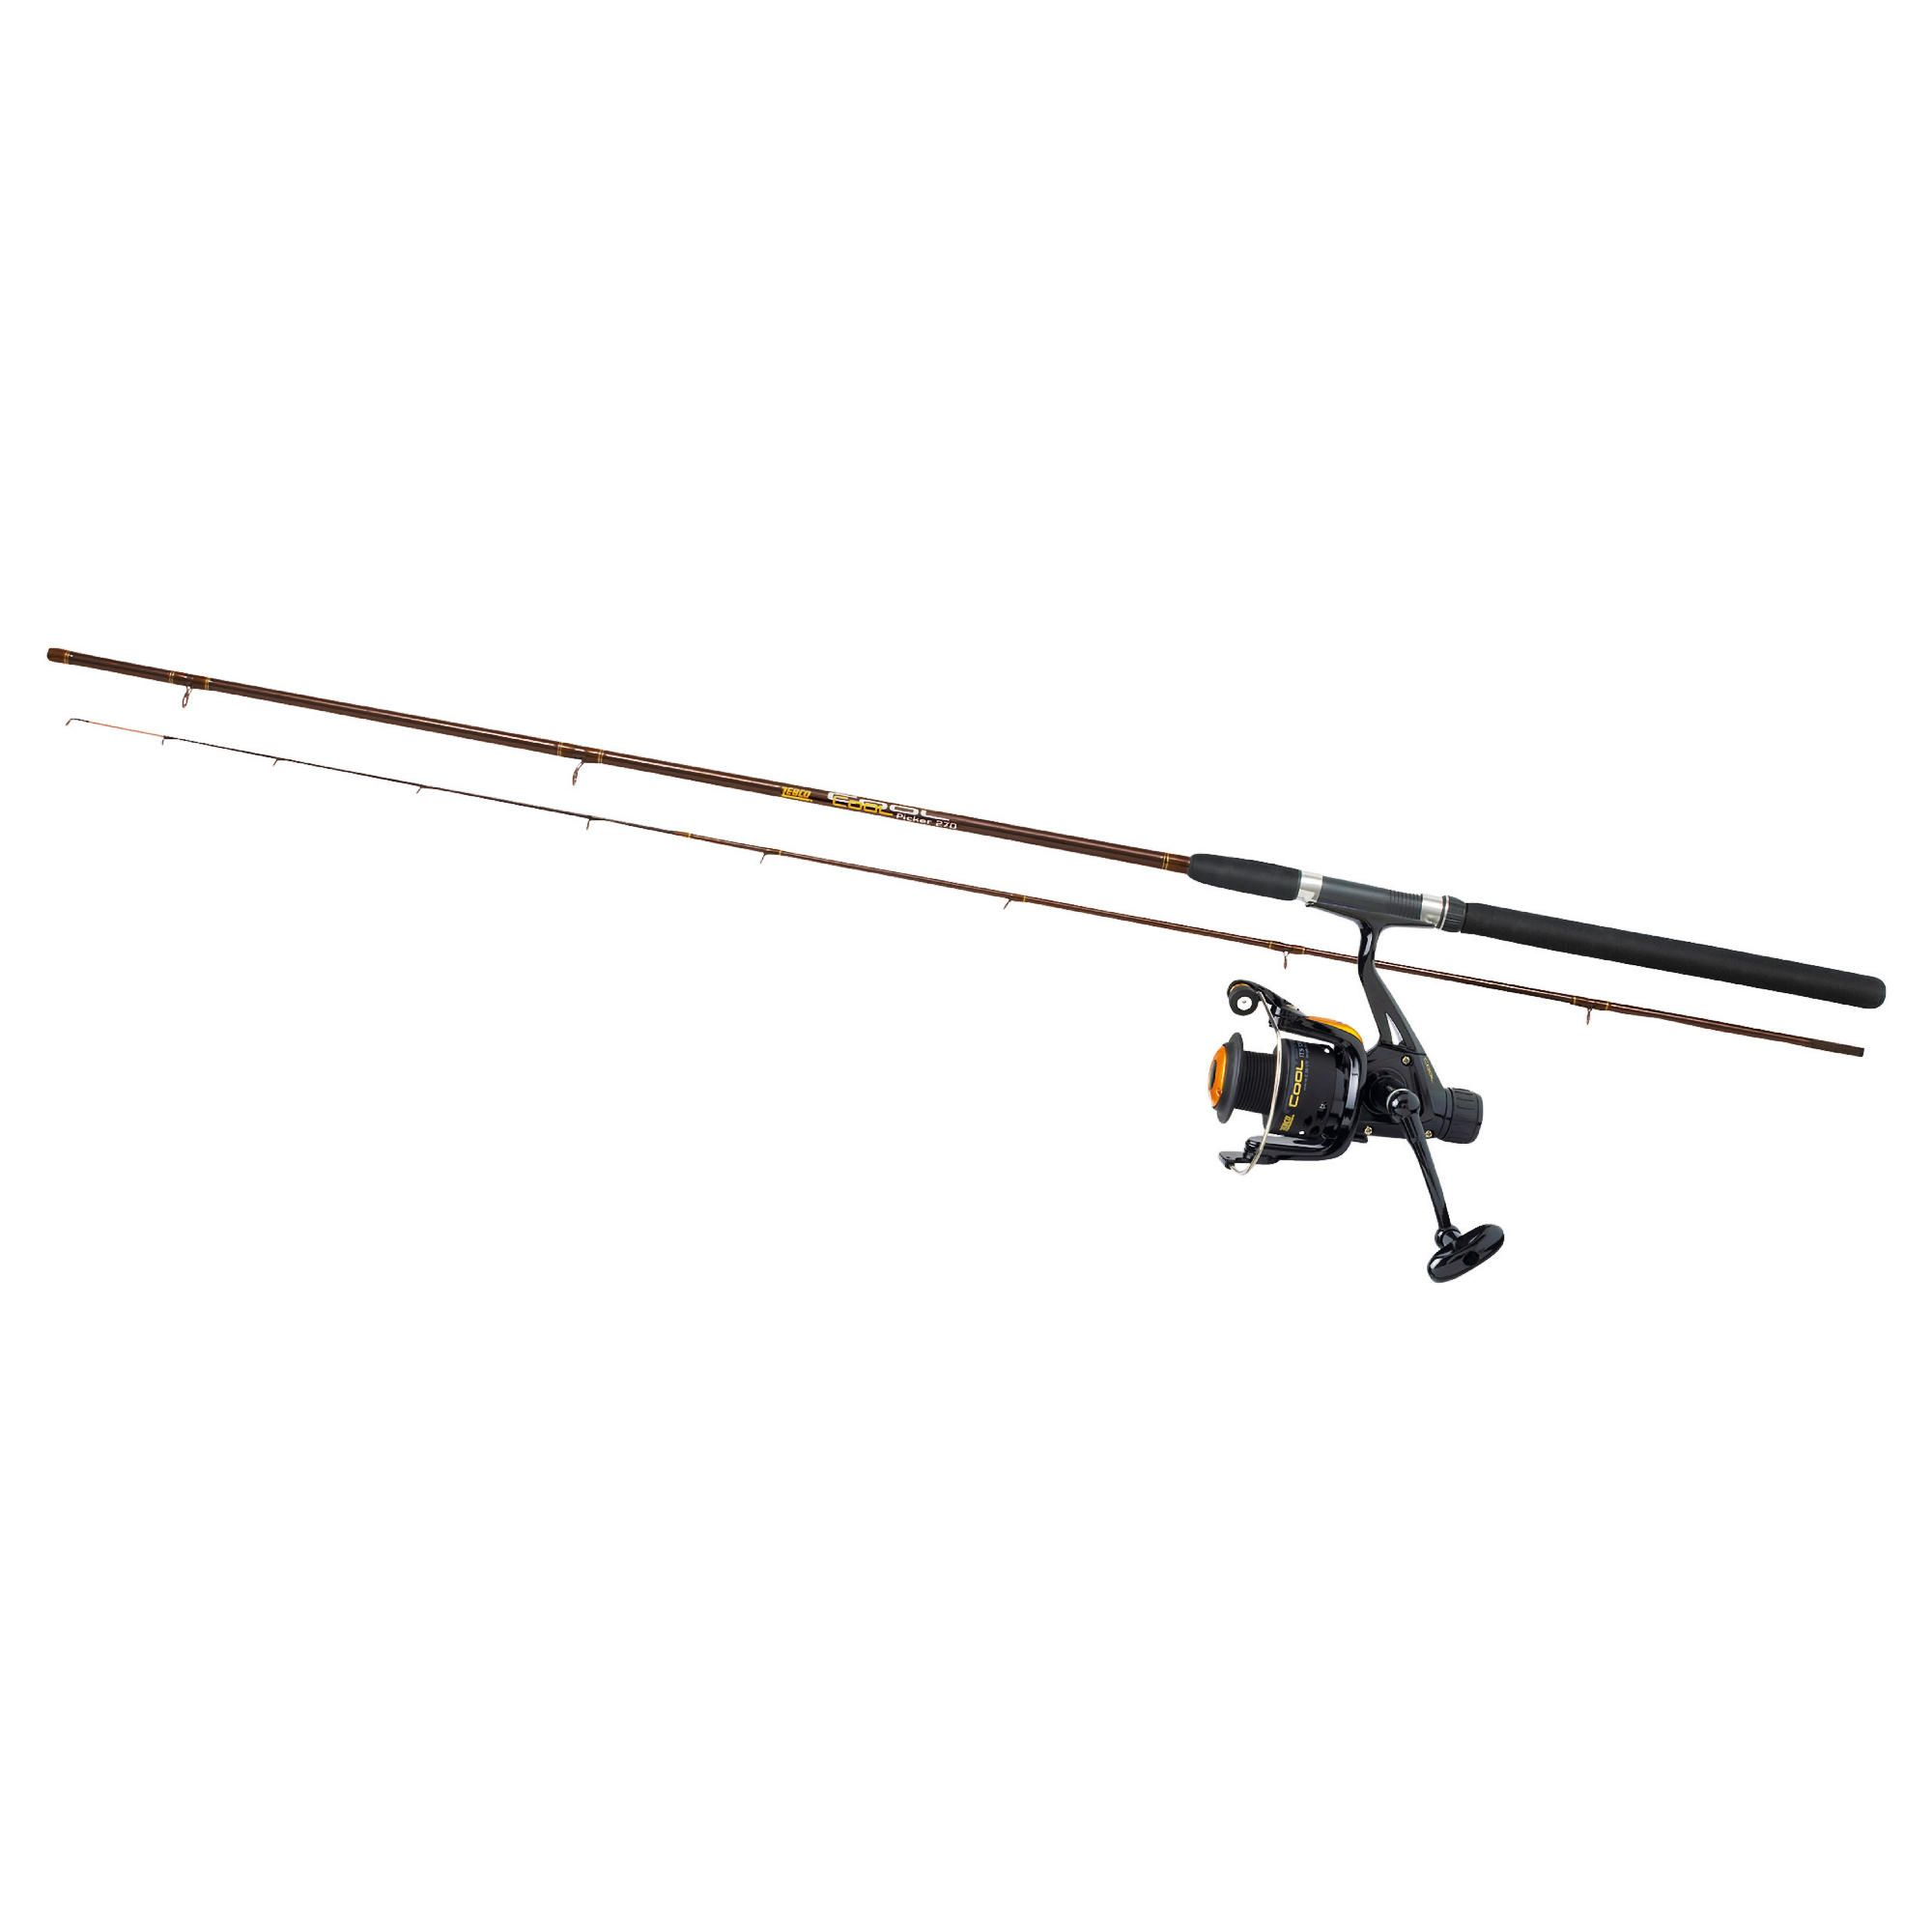 Computernow hunting and fishing zebco cool for Cool fishing poles